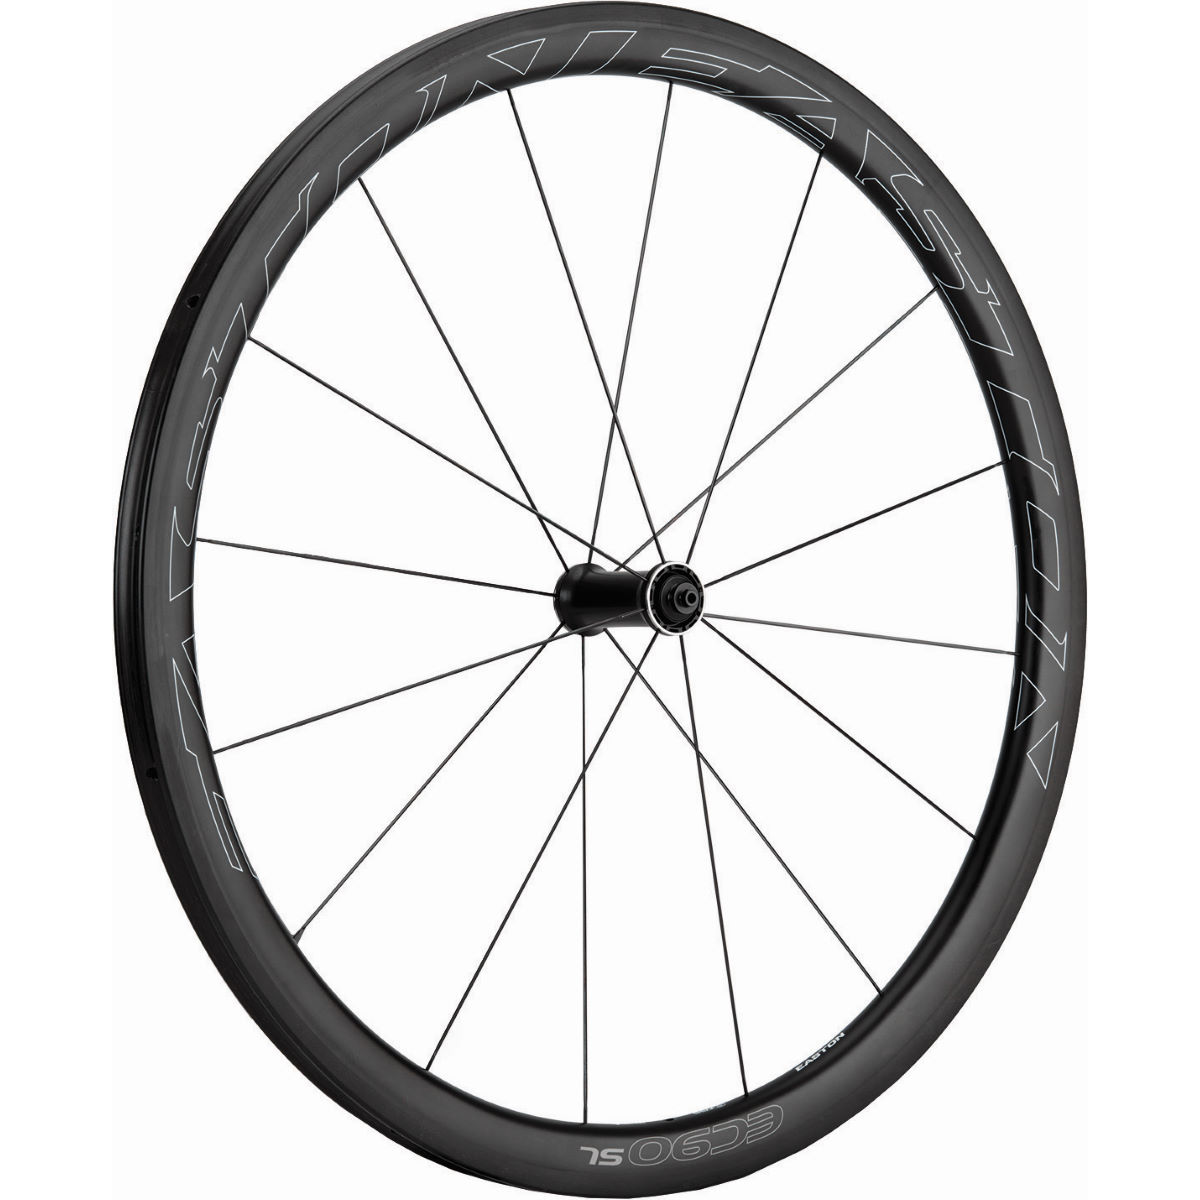 Easton EC90 SL Carbon Tubeless Clincher Front Wheel - Ruedas de competición